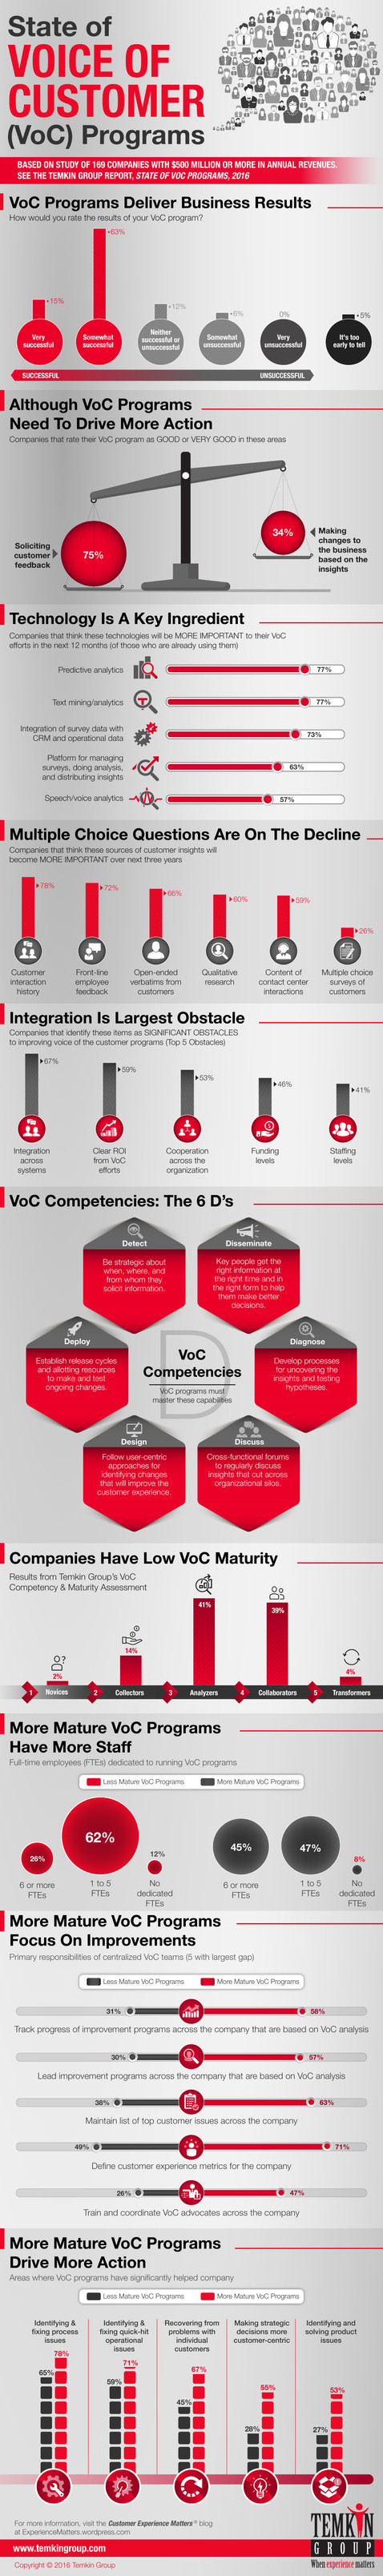 State of Voice of Customer (VOC) Programs